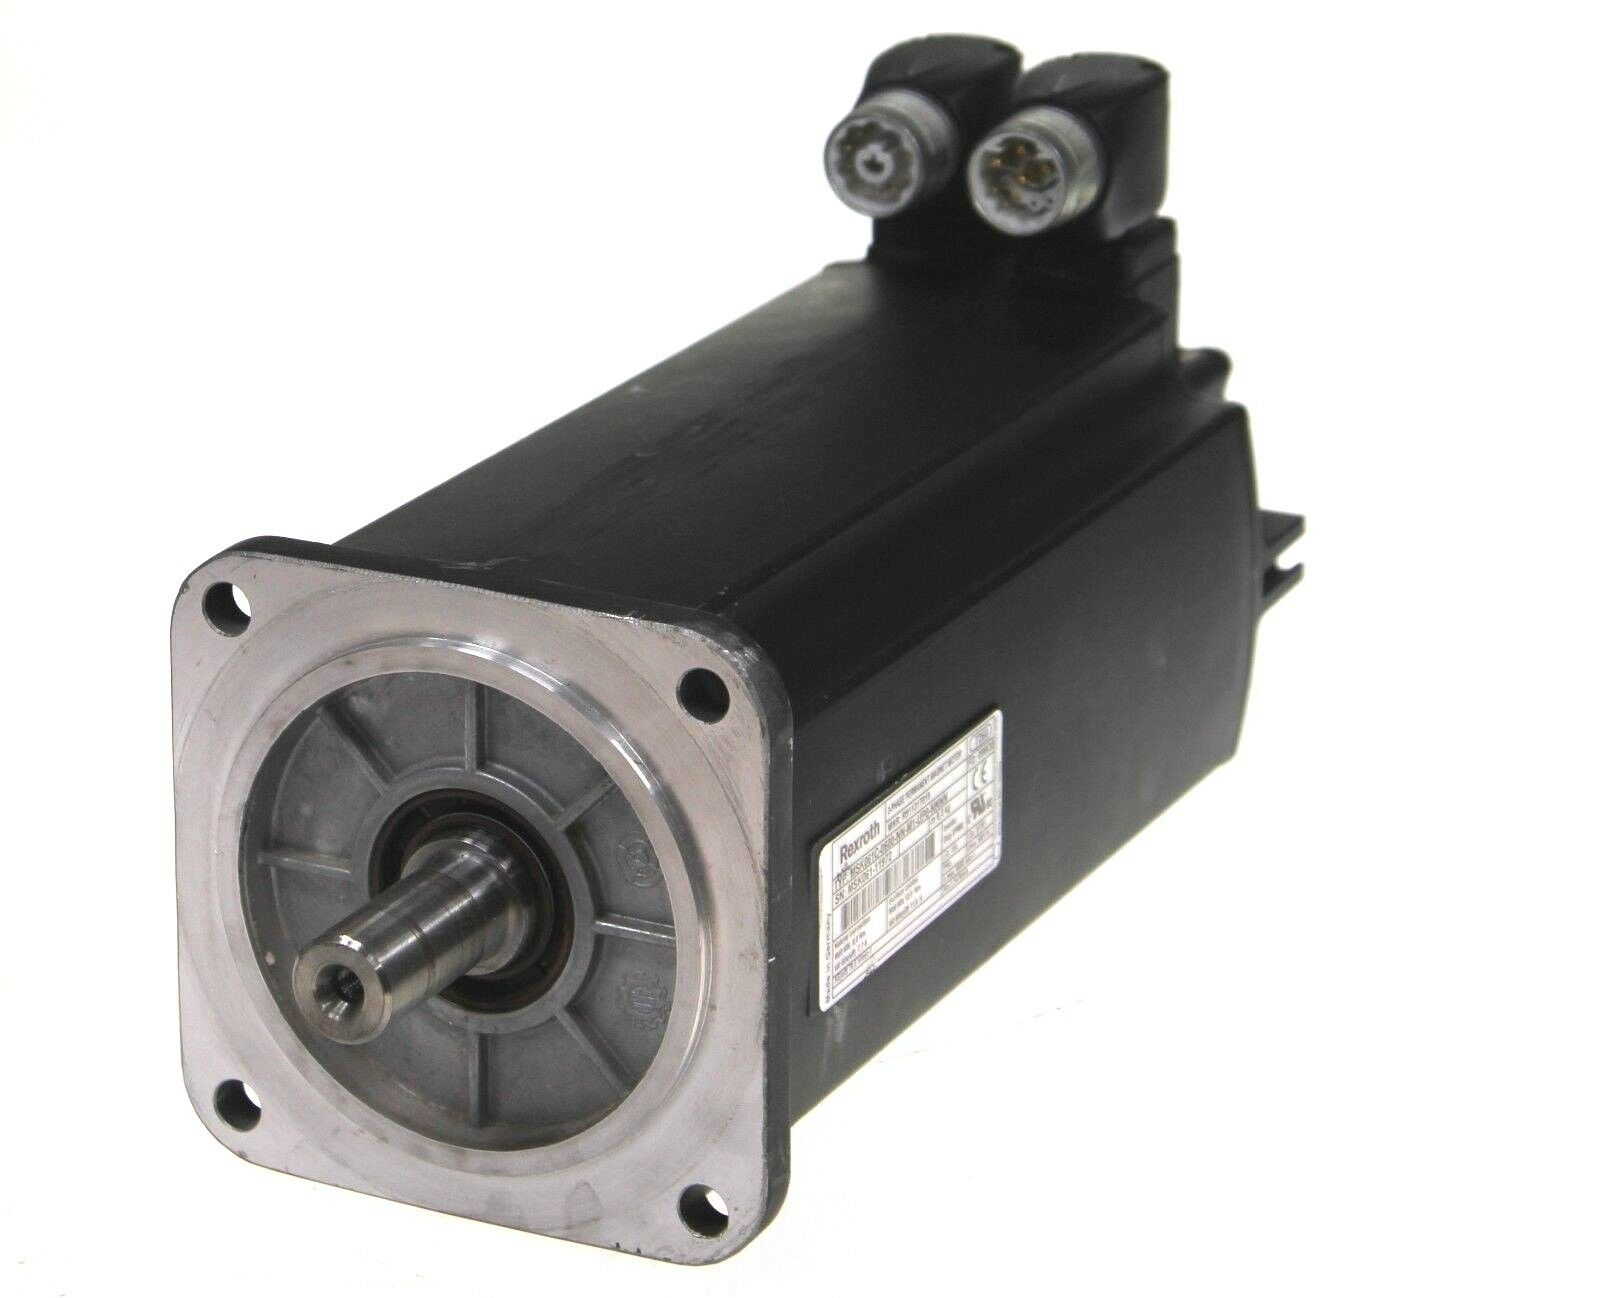 Rexroth MSK061C-0600-NN-M1-UP0-NNNN 3-Phase Permanent Magnet Motor